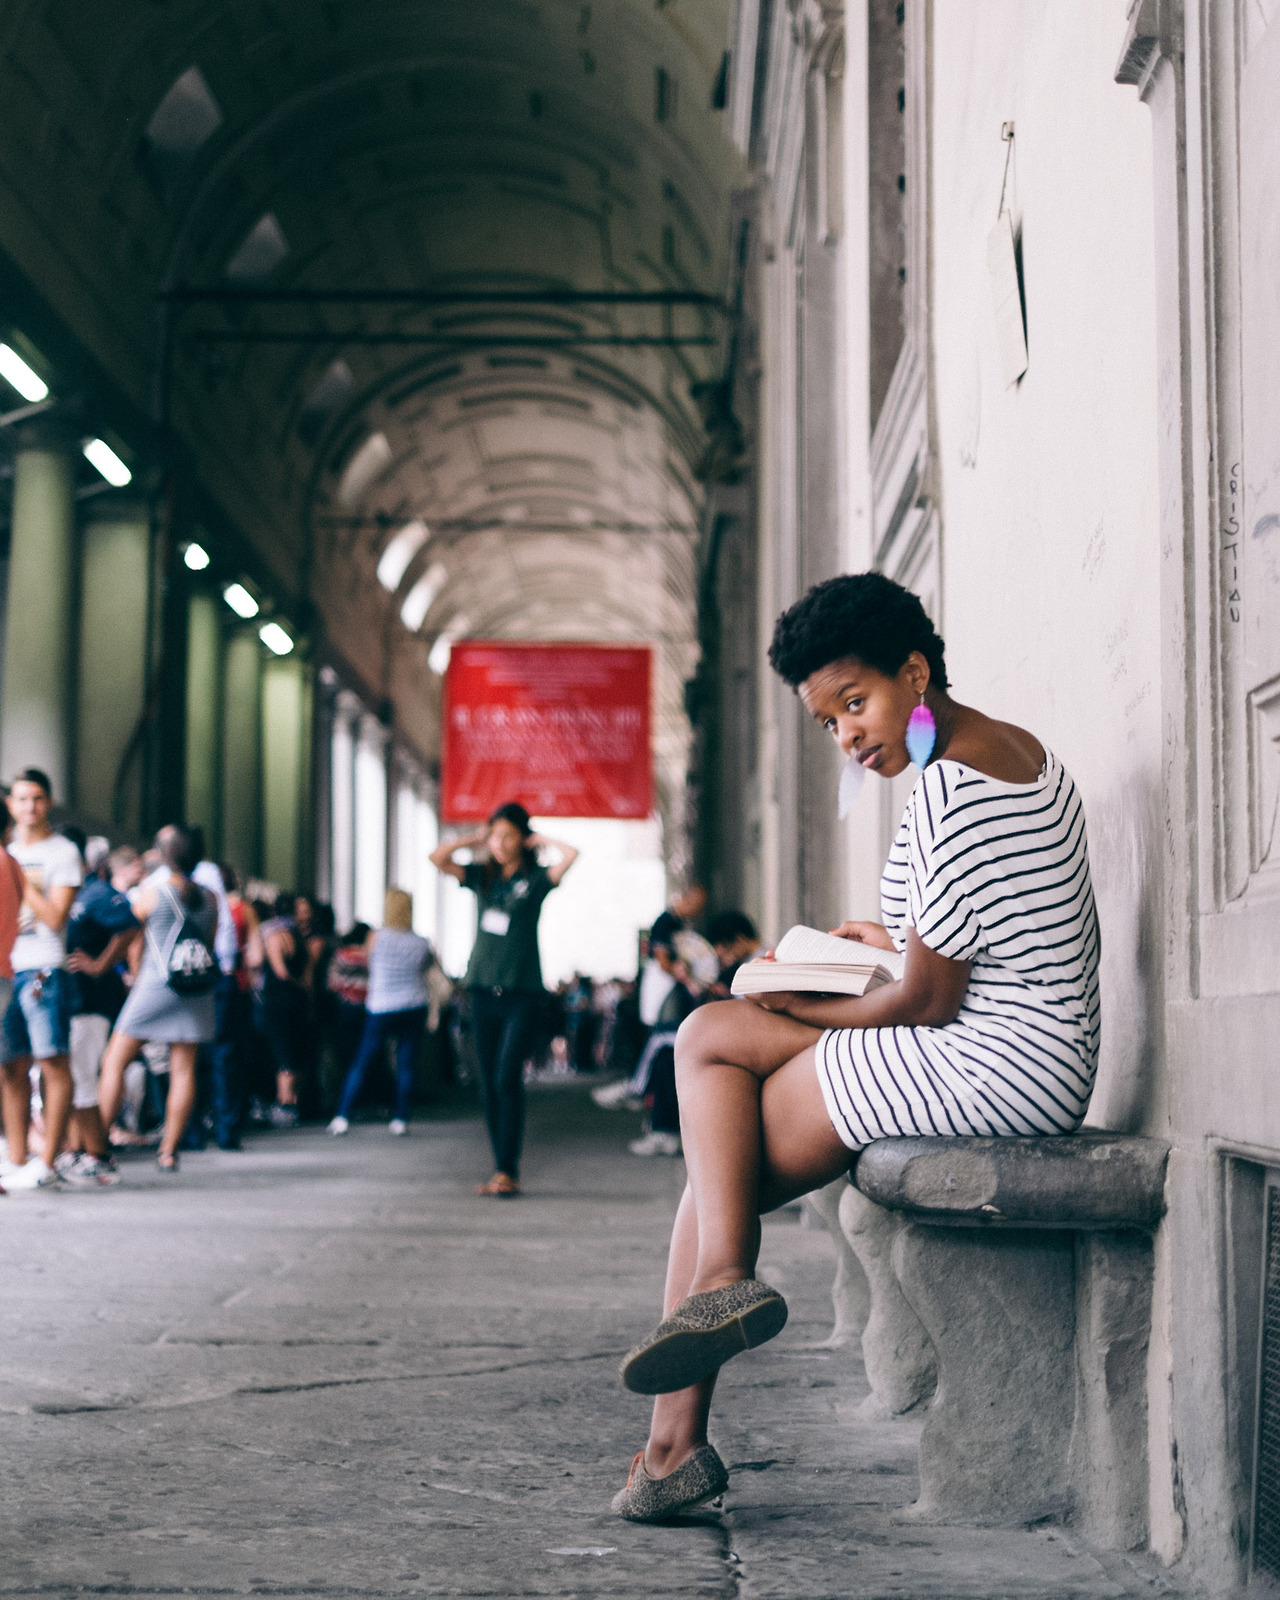 """Marcia working on her Clair Huxtable """"I ain't playing"""" glance just before heading to the Galileo Museum. She told me I had to wait 30 minutes while she relaxed and read."""